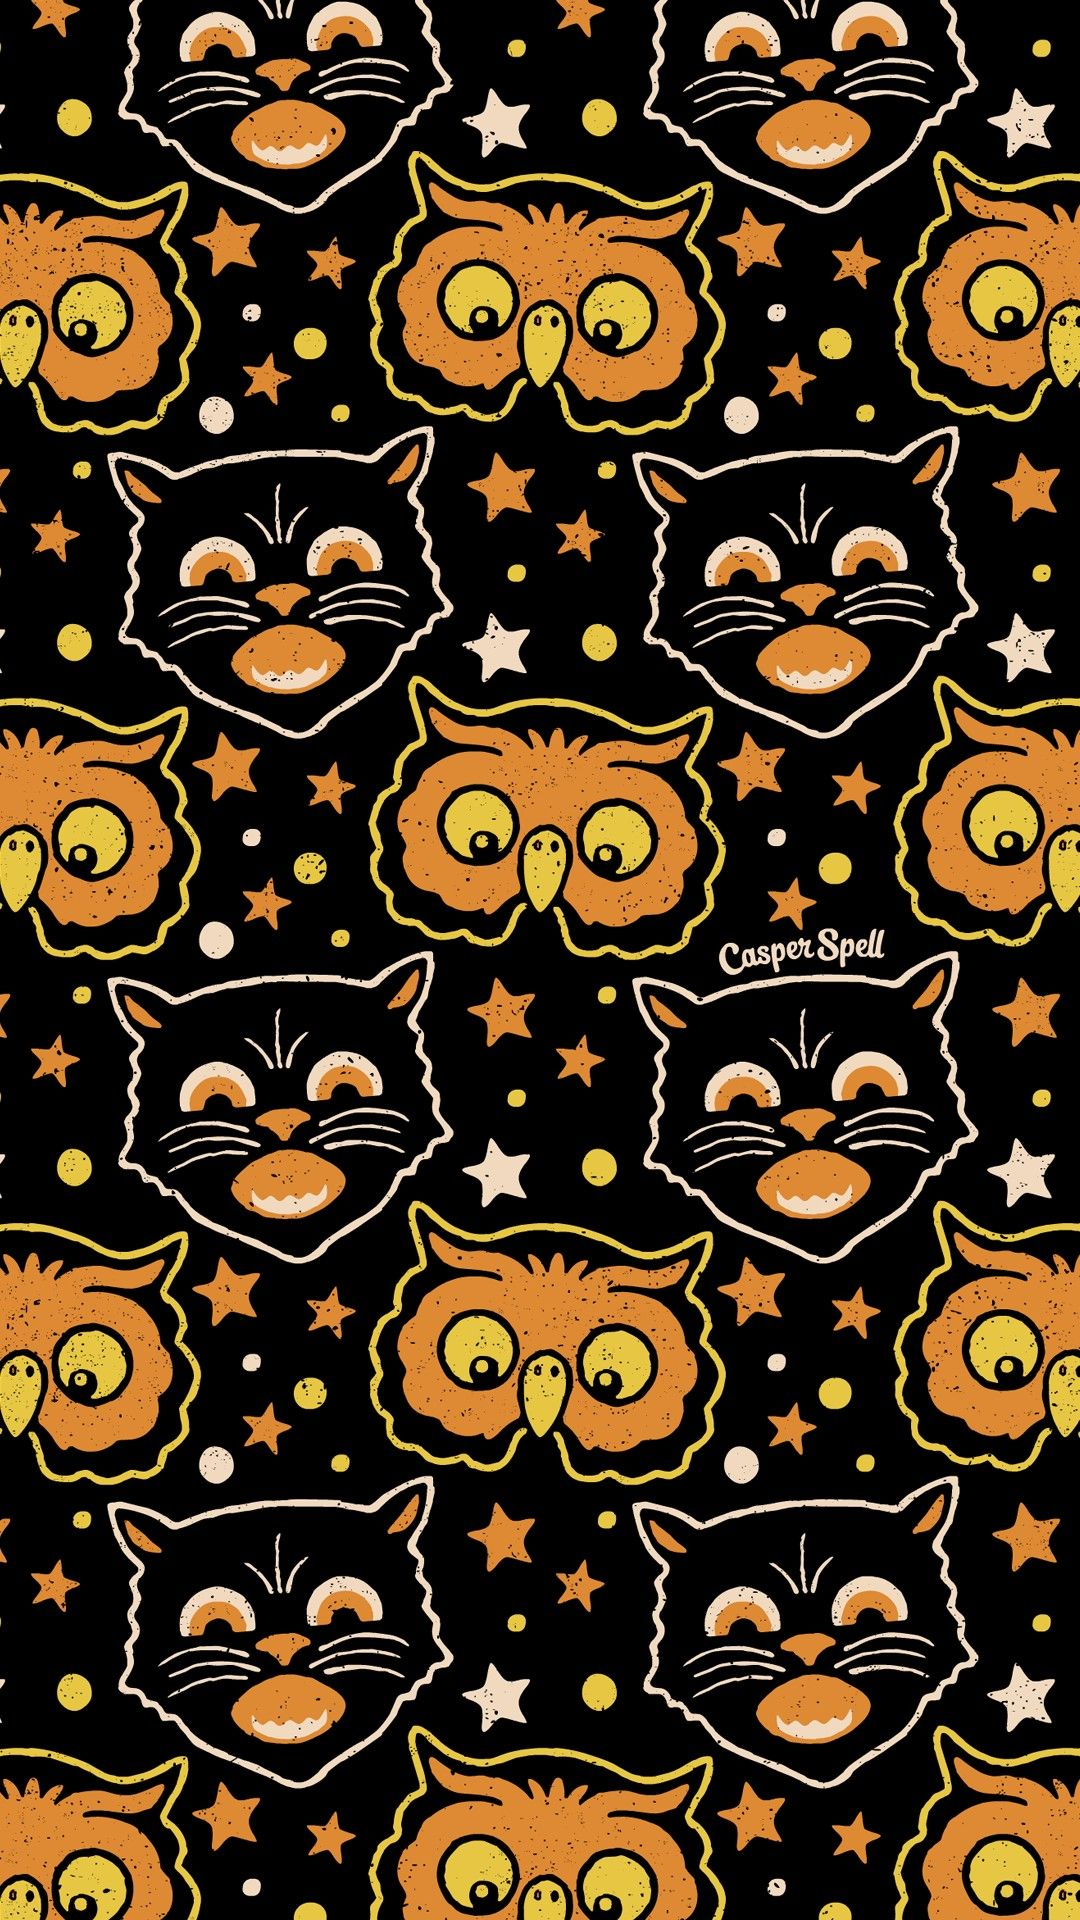 Retro Halloween Black Cat Owl Repeat Pattern By Casper Spell Vintage Halloween Art Retro Halloween Halloween Wallpaper